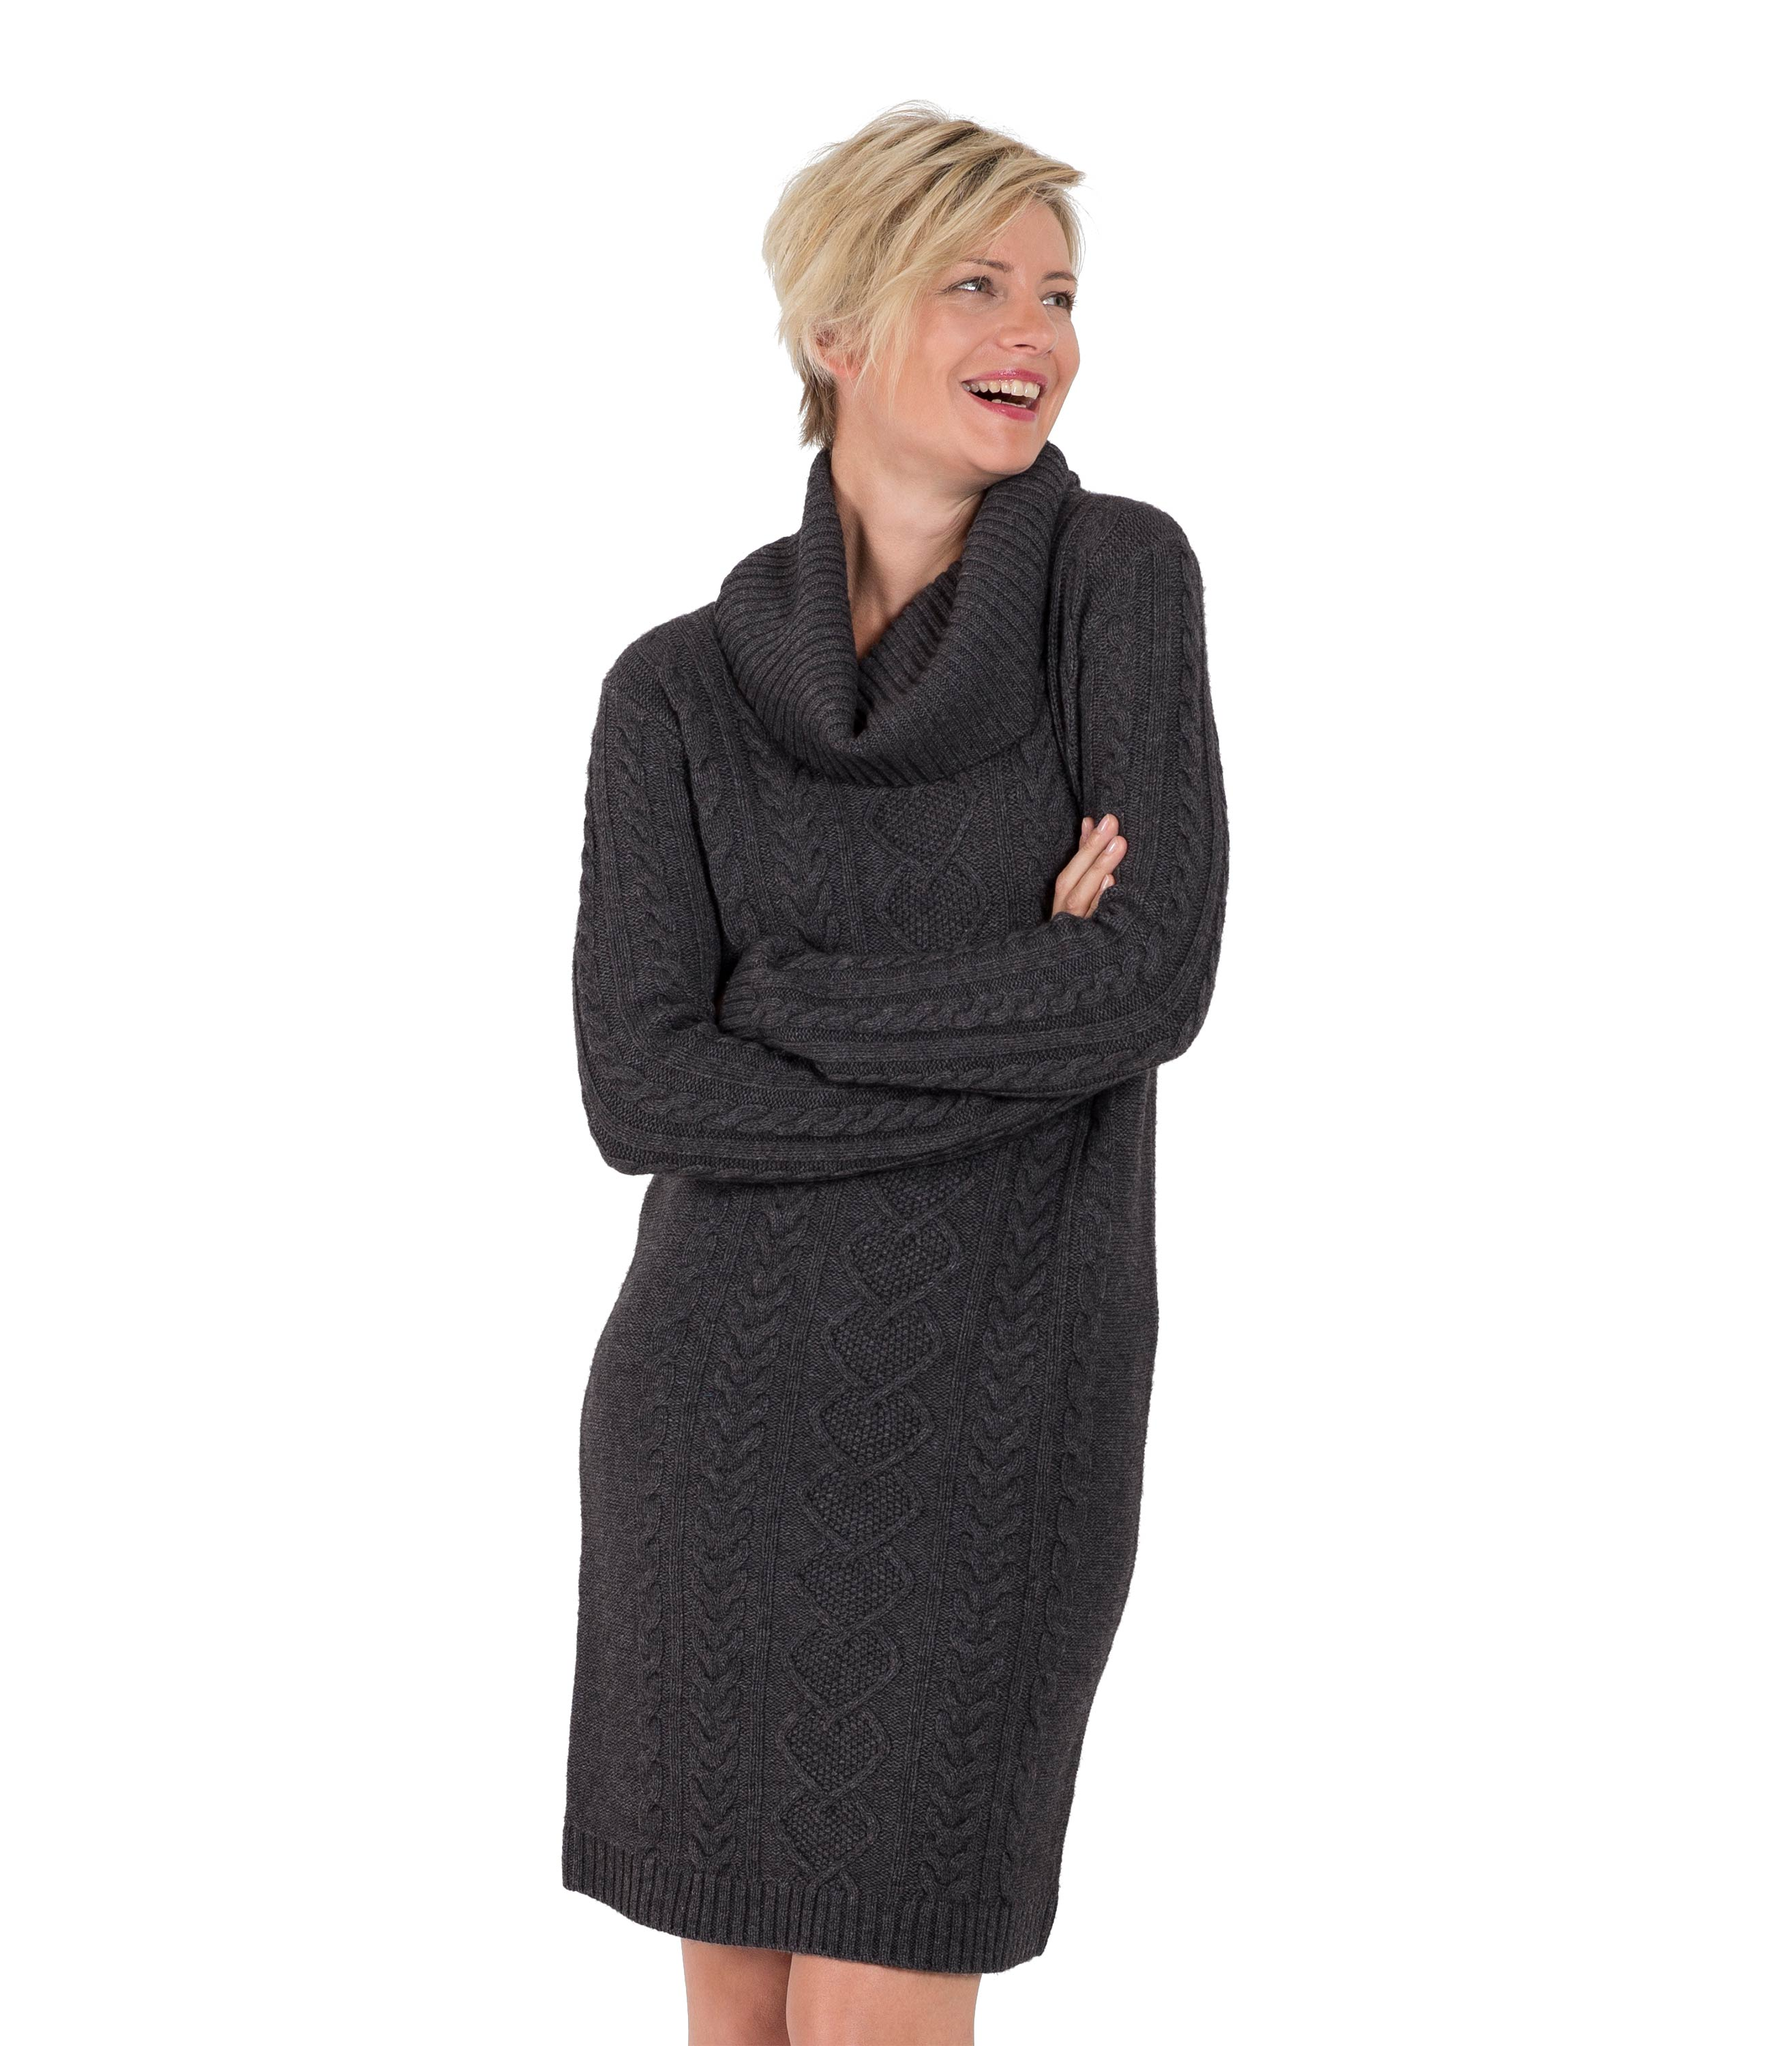 Shop Women's Sweaters at fluctuatin.gq including cashmere, cardigans & pullovers in the latest styles & timeless designs. Free shipping on orders over $